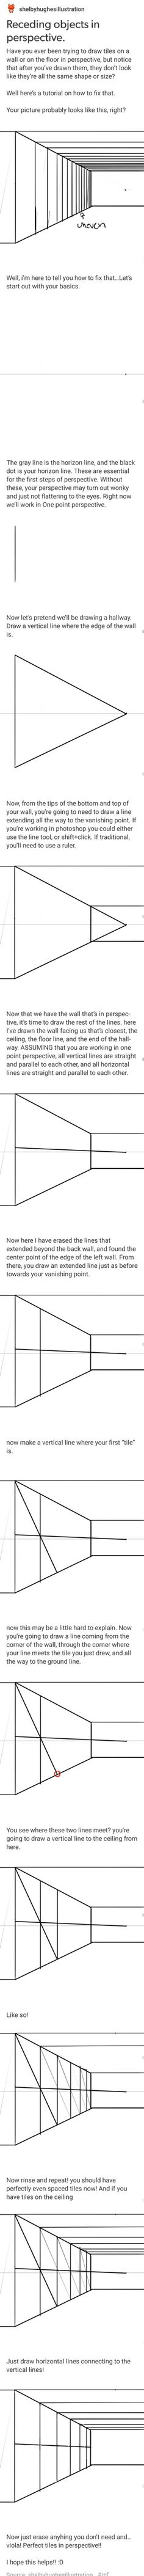 I learned this I art class way back but it's really helpful tool>>> i learnt the thing with the perspective lines and horizon line but the tiles thing i didnt so this is really helpful